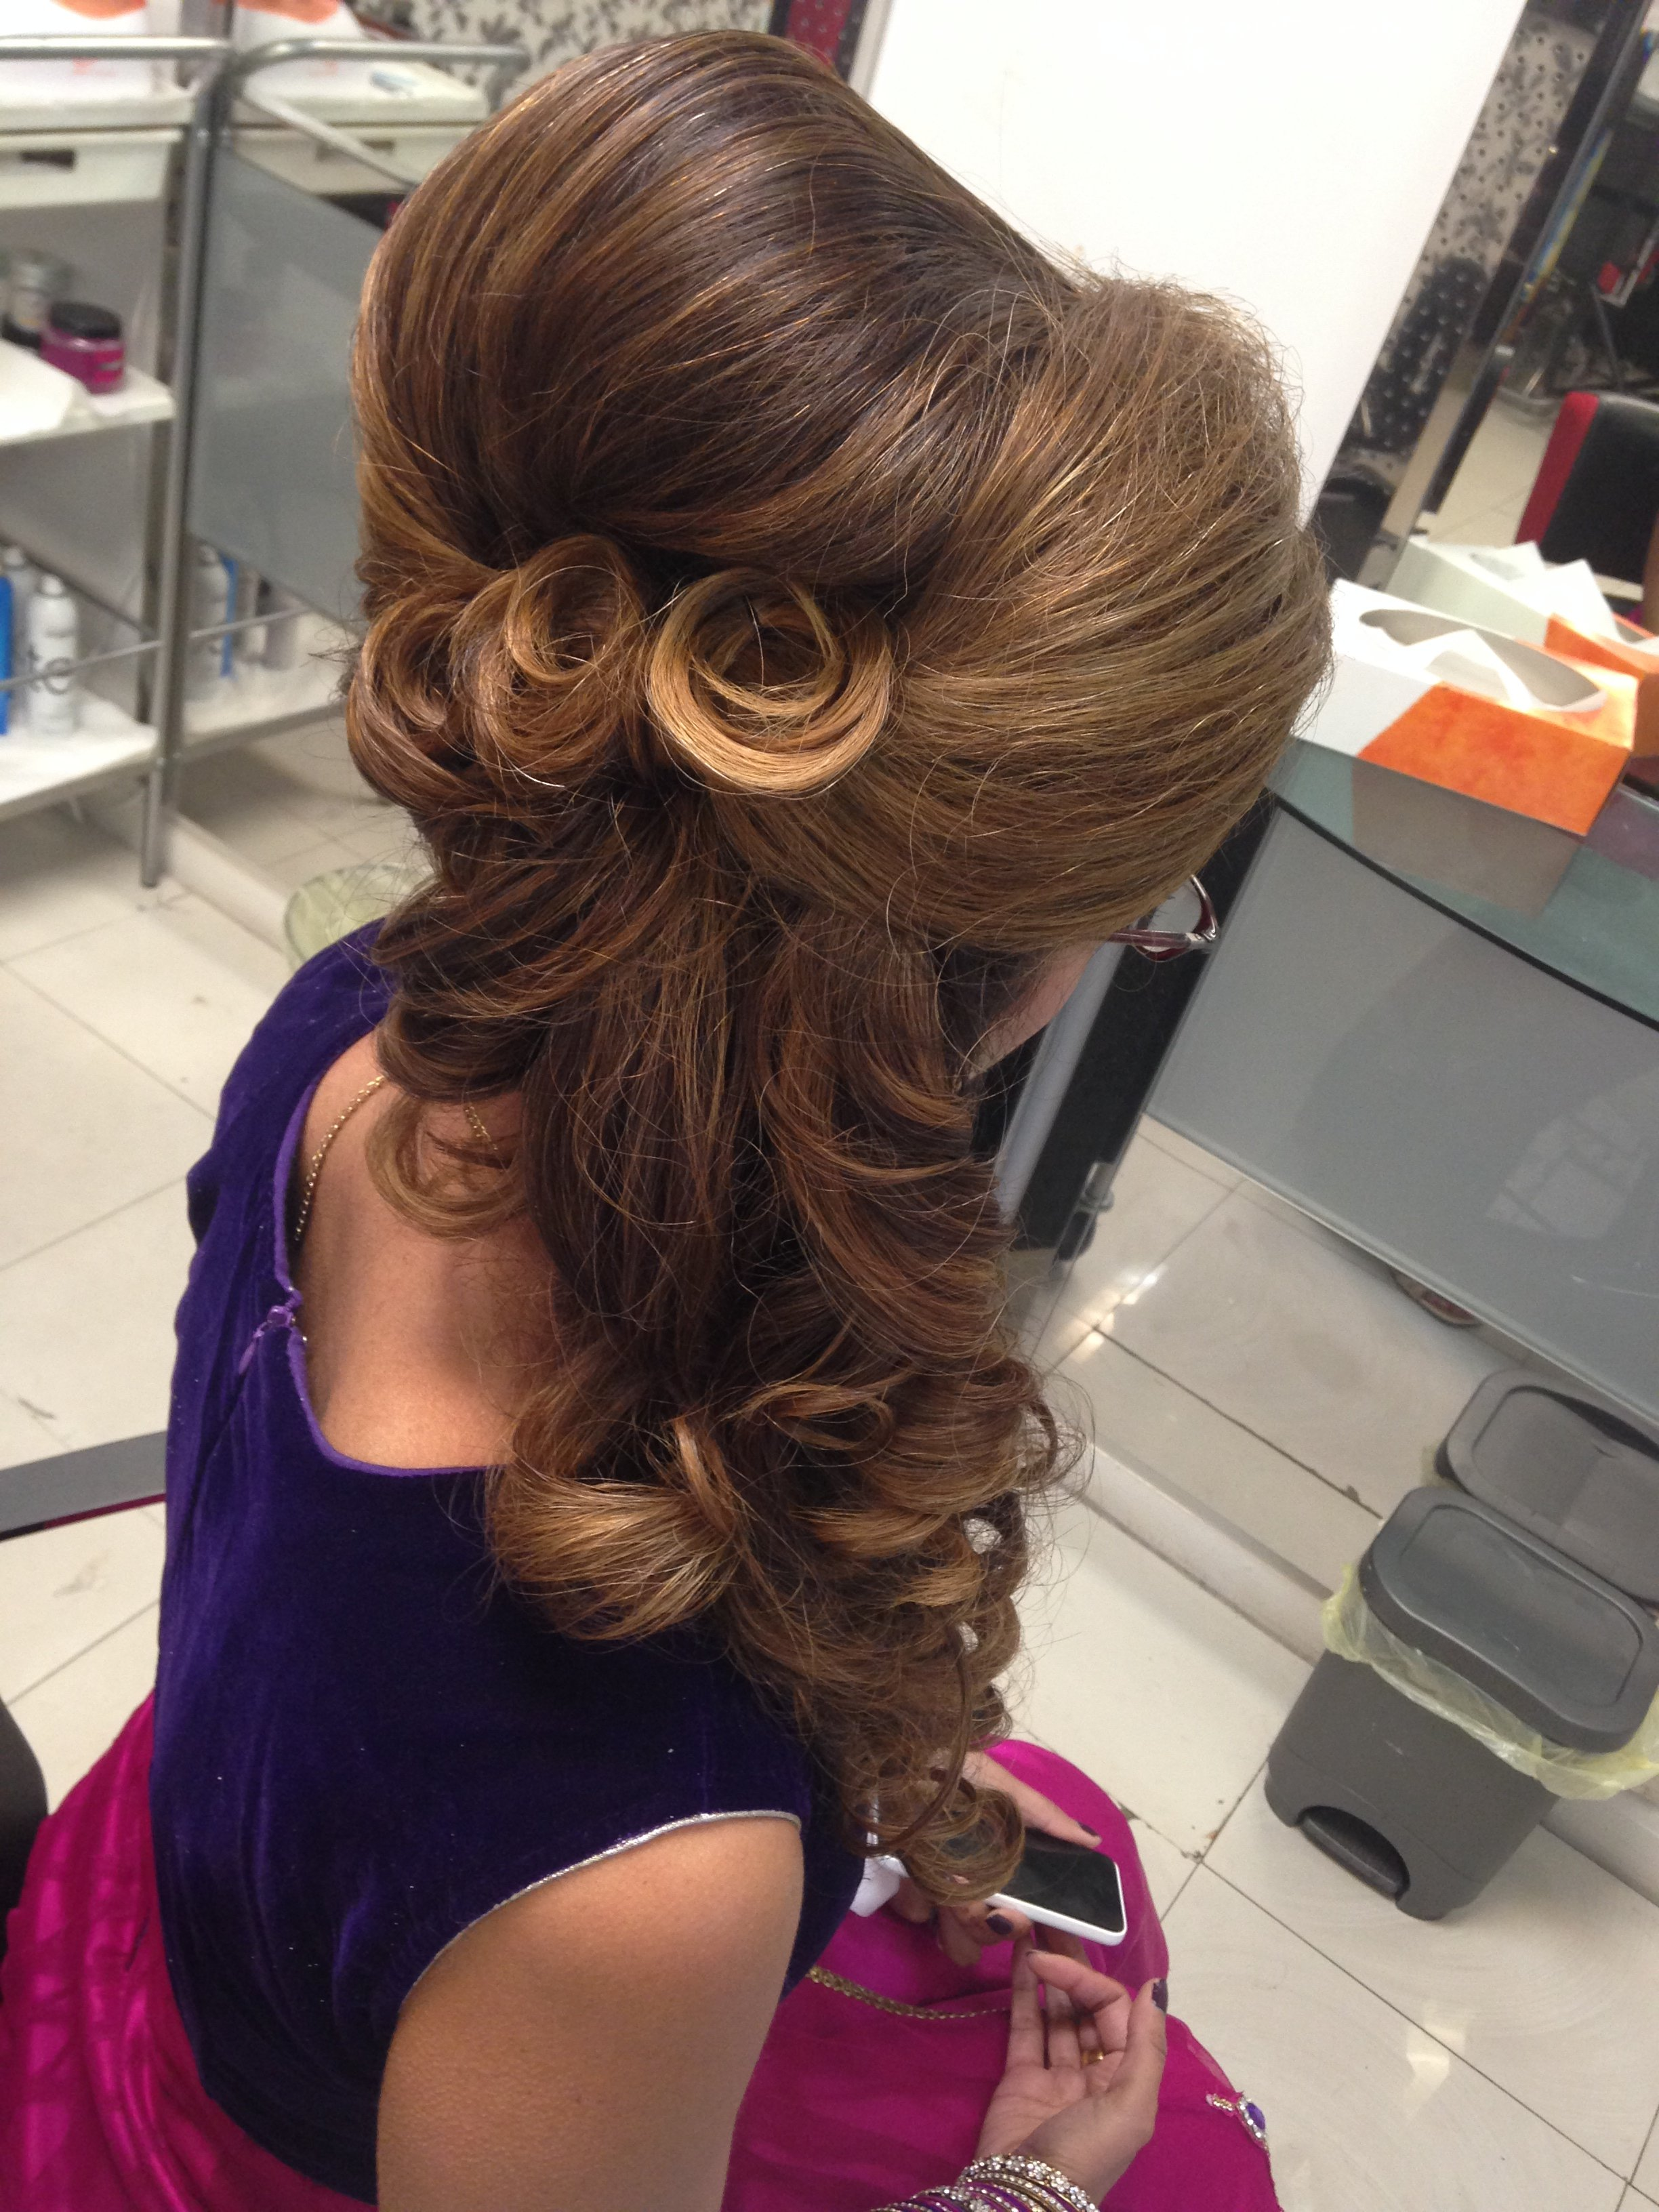 Party Hairstyle With Swirly Details And Beehive